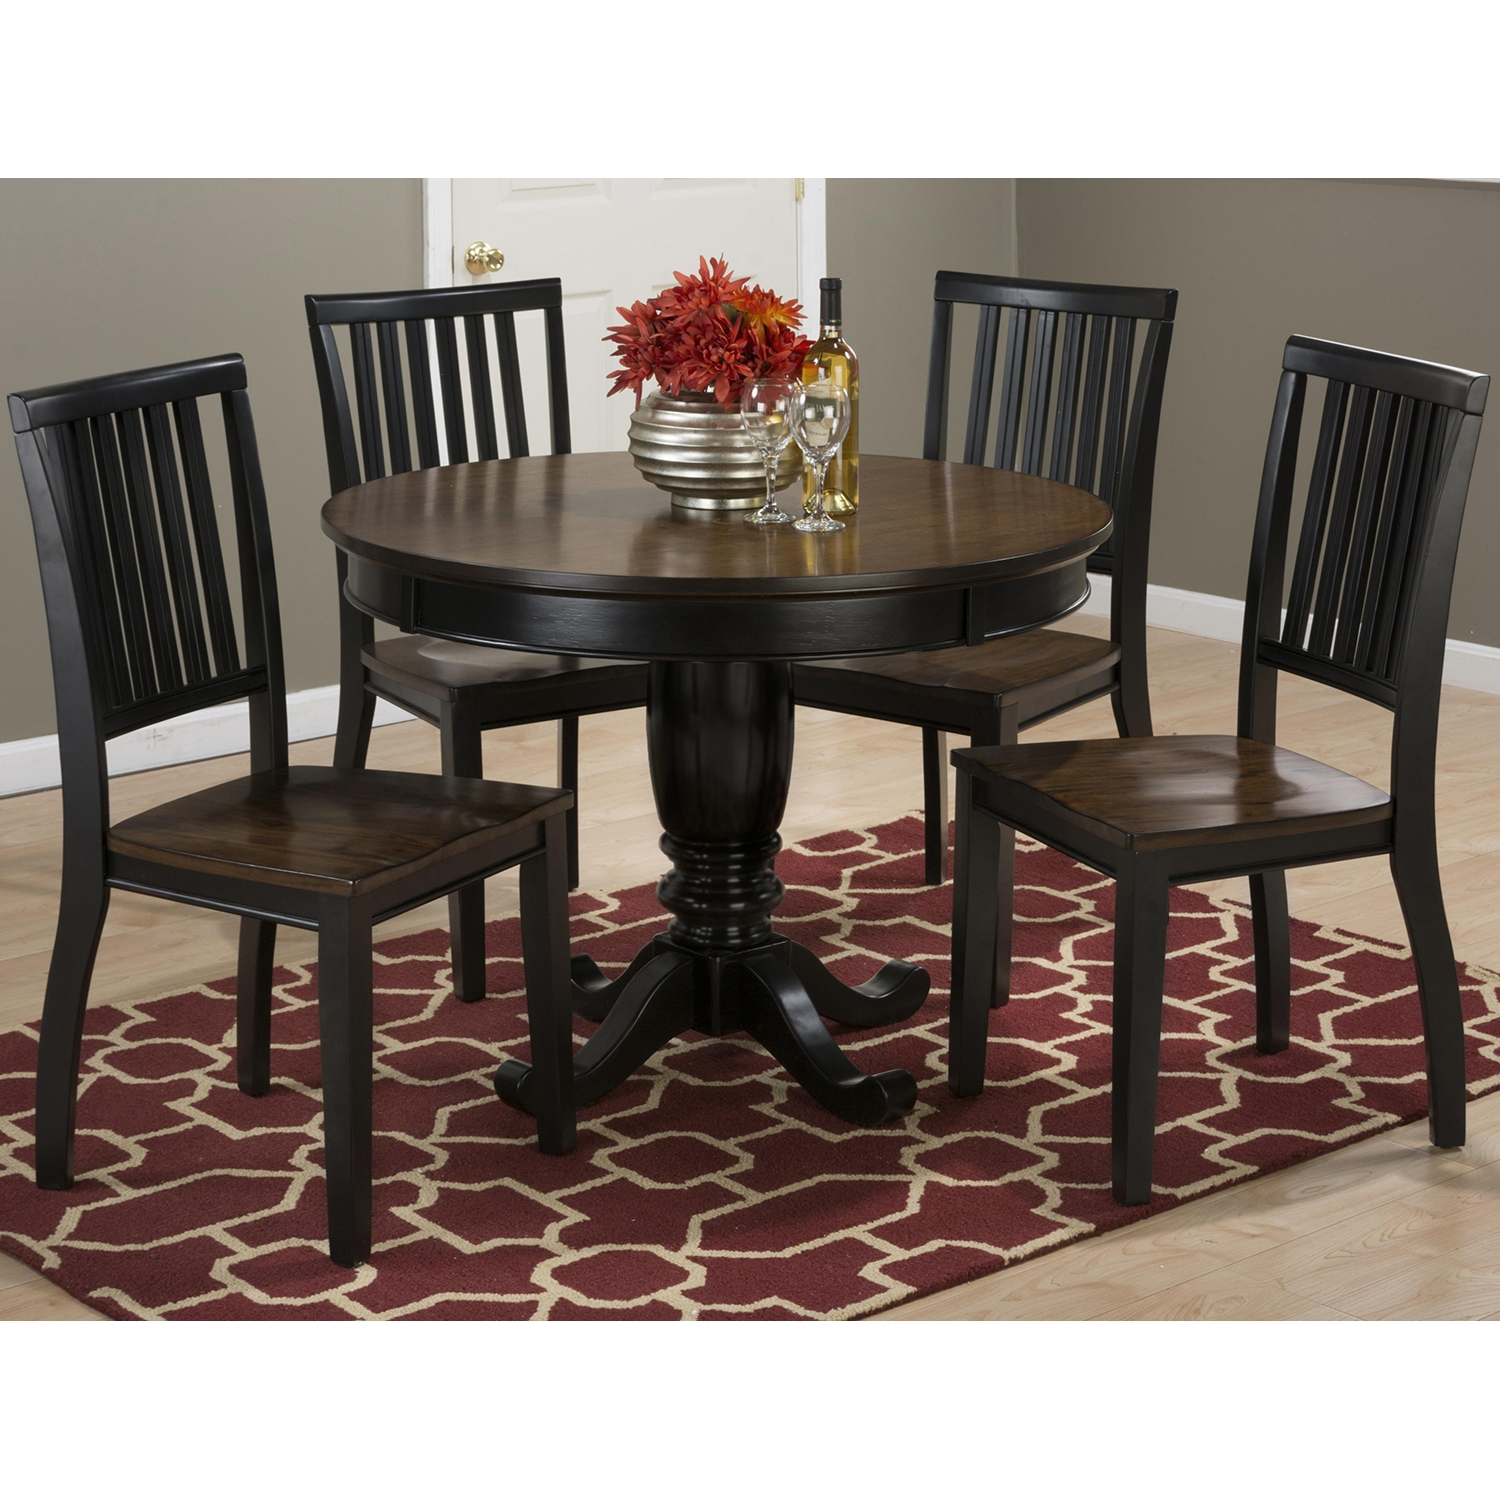 "Braden 42"" Round Dining Table - Antique Black, Pedestal Base - JOFR-272-42TBKT"